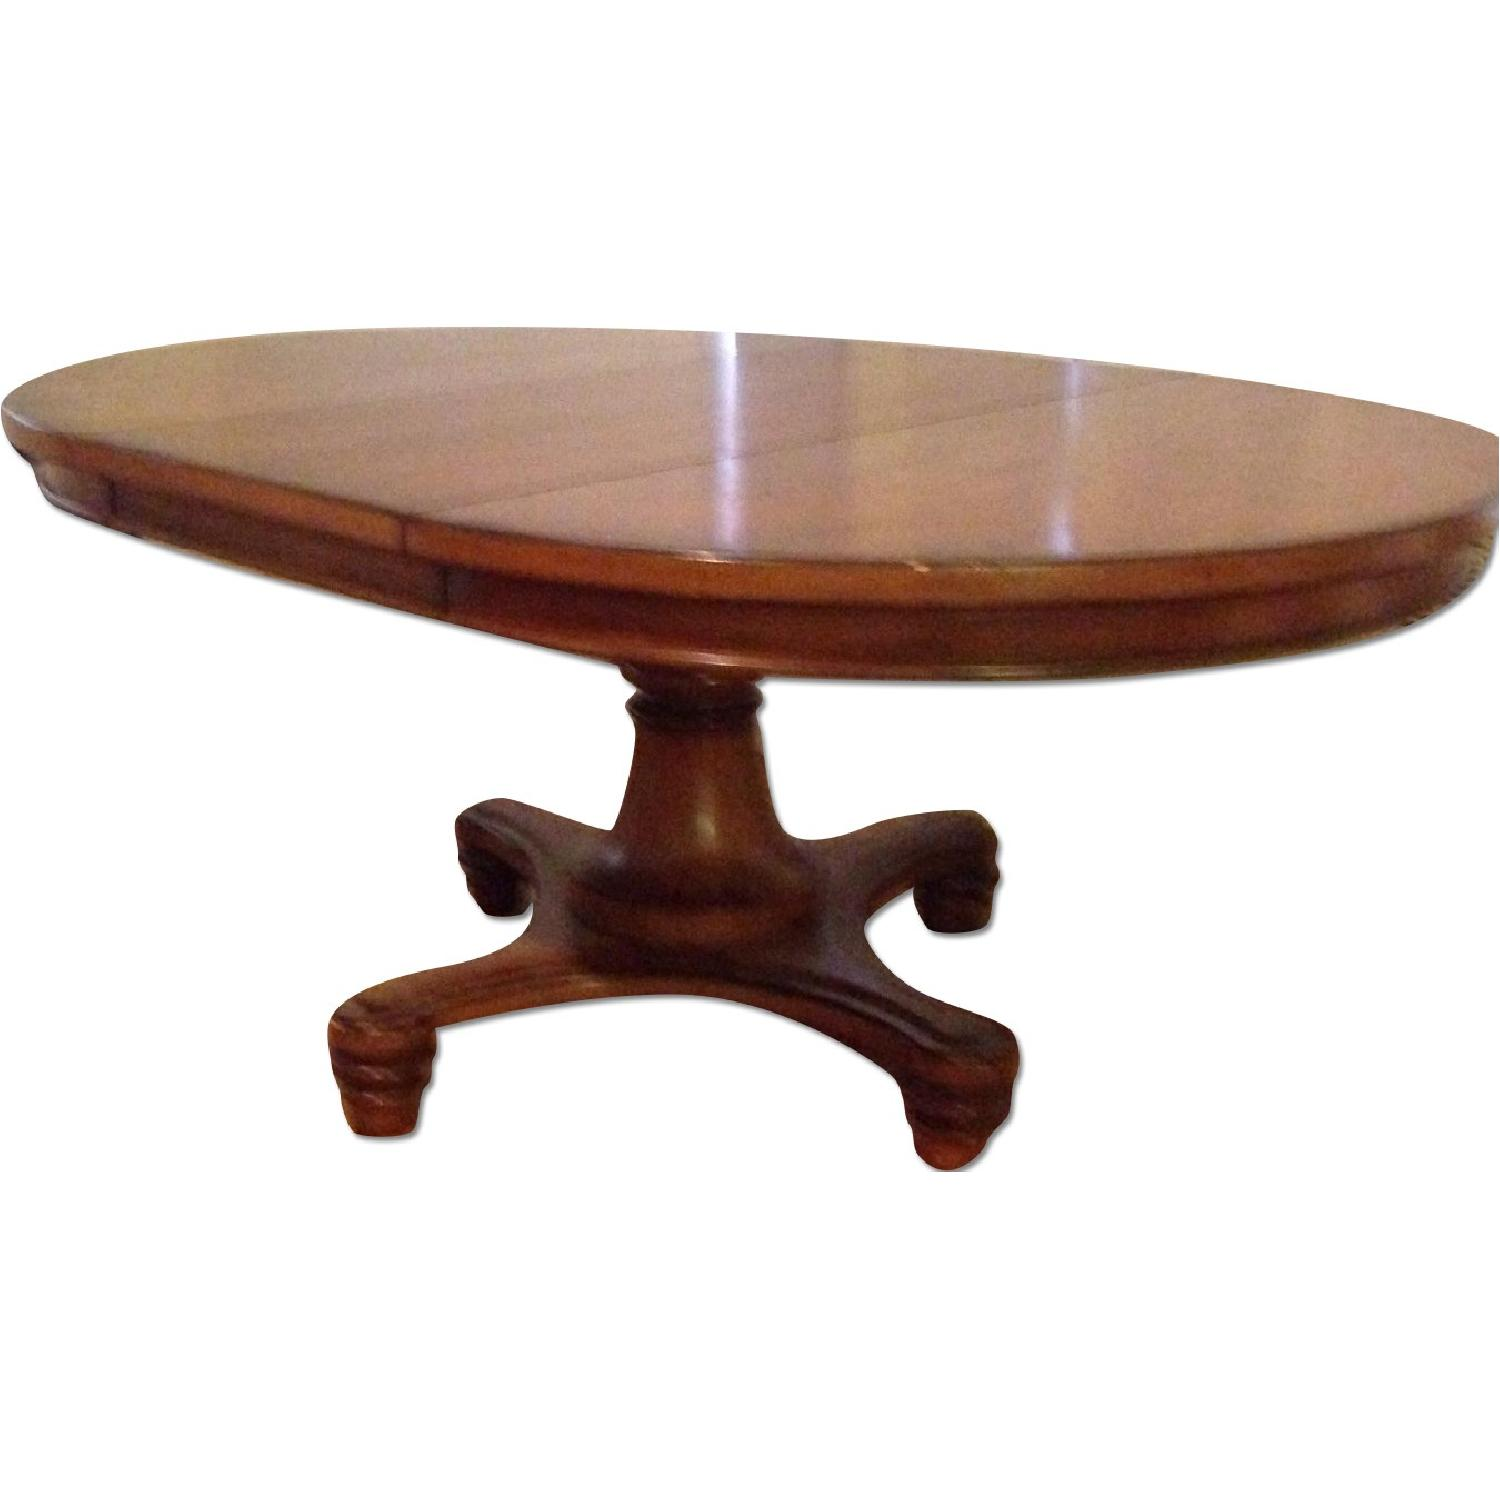 Pottery Barn Dining Room Table w/ Leaf - image-0